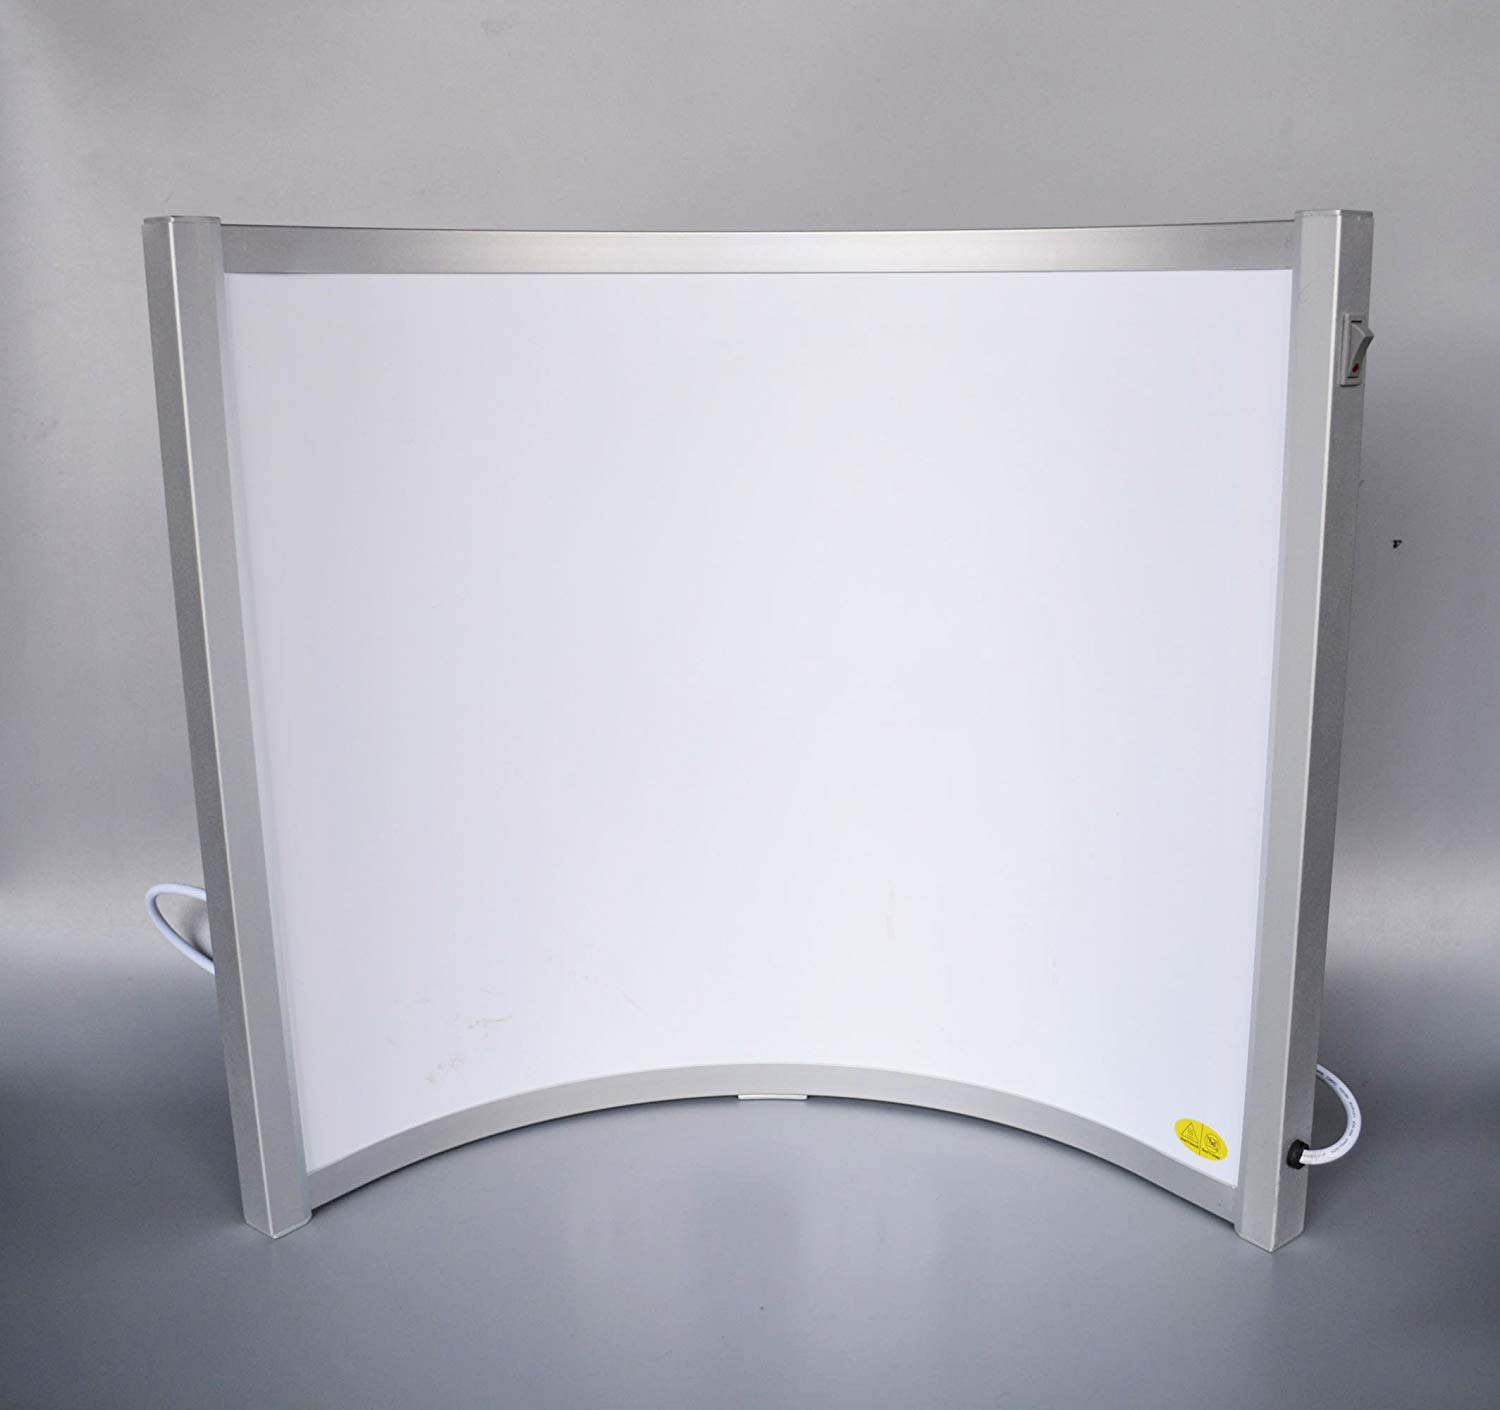 Home Heating Shop Panel Heaters Reviews Invo curved Panel Heater